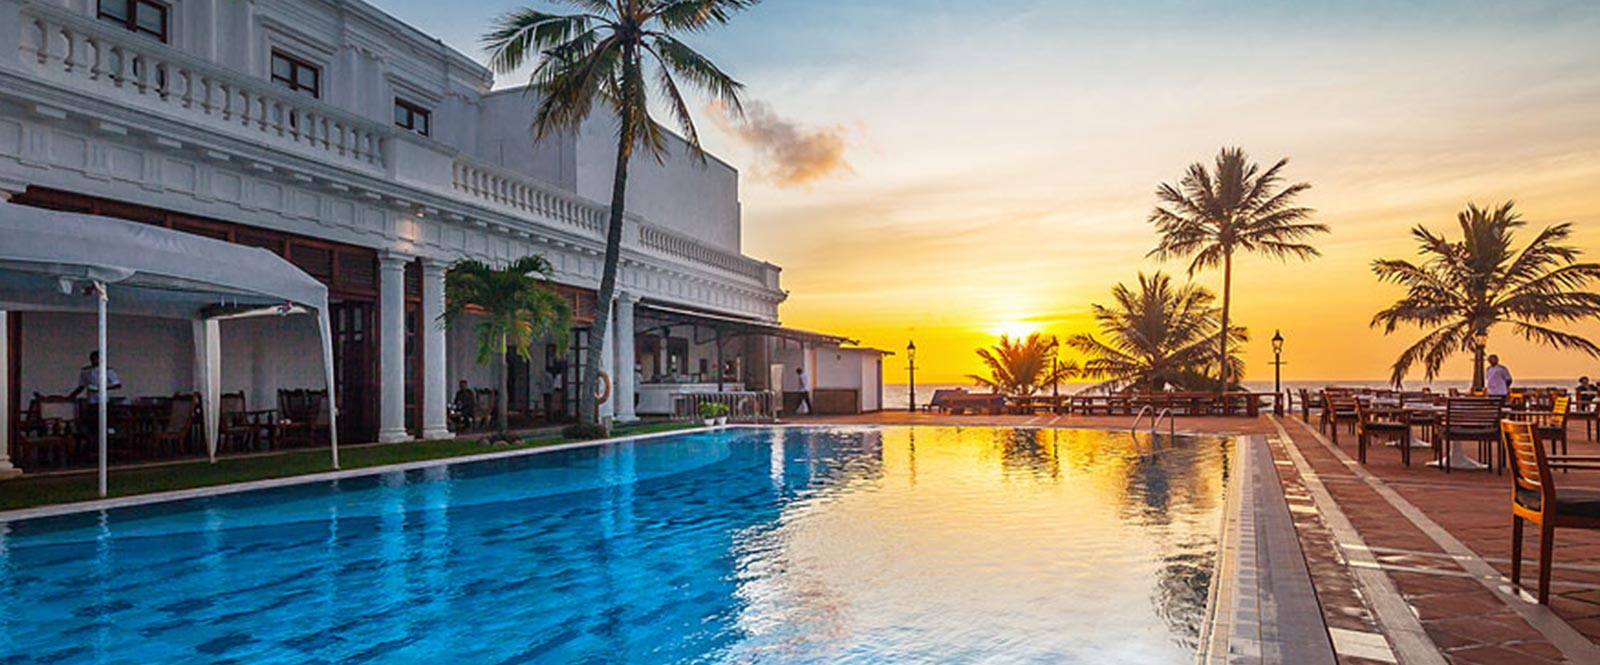 Swimming Pool of Hotel in Mount Lavinia